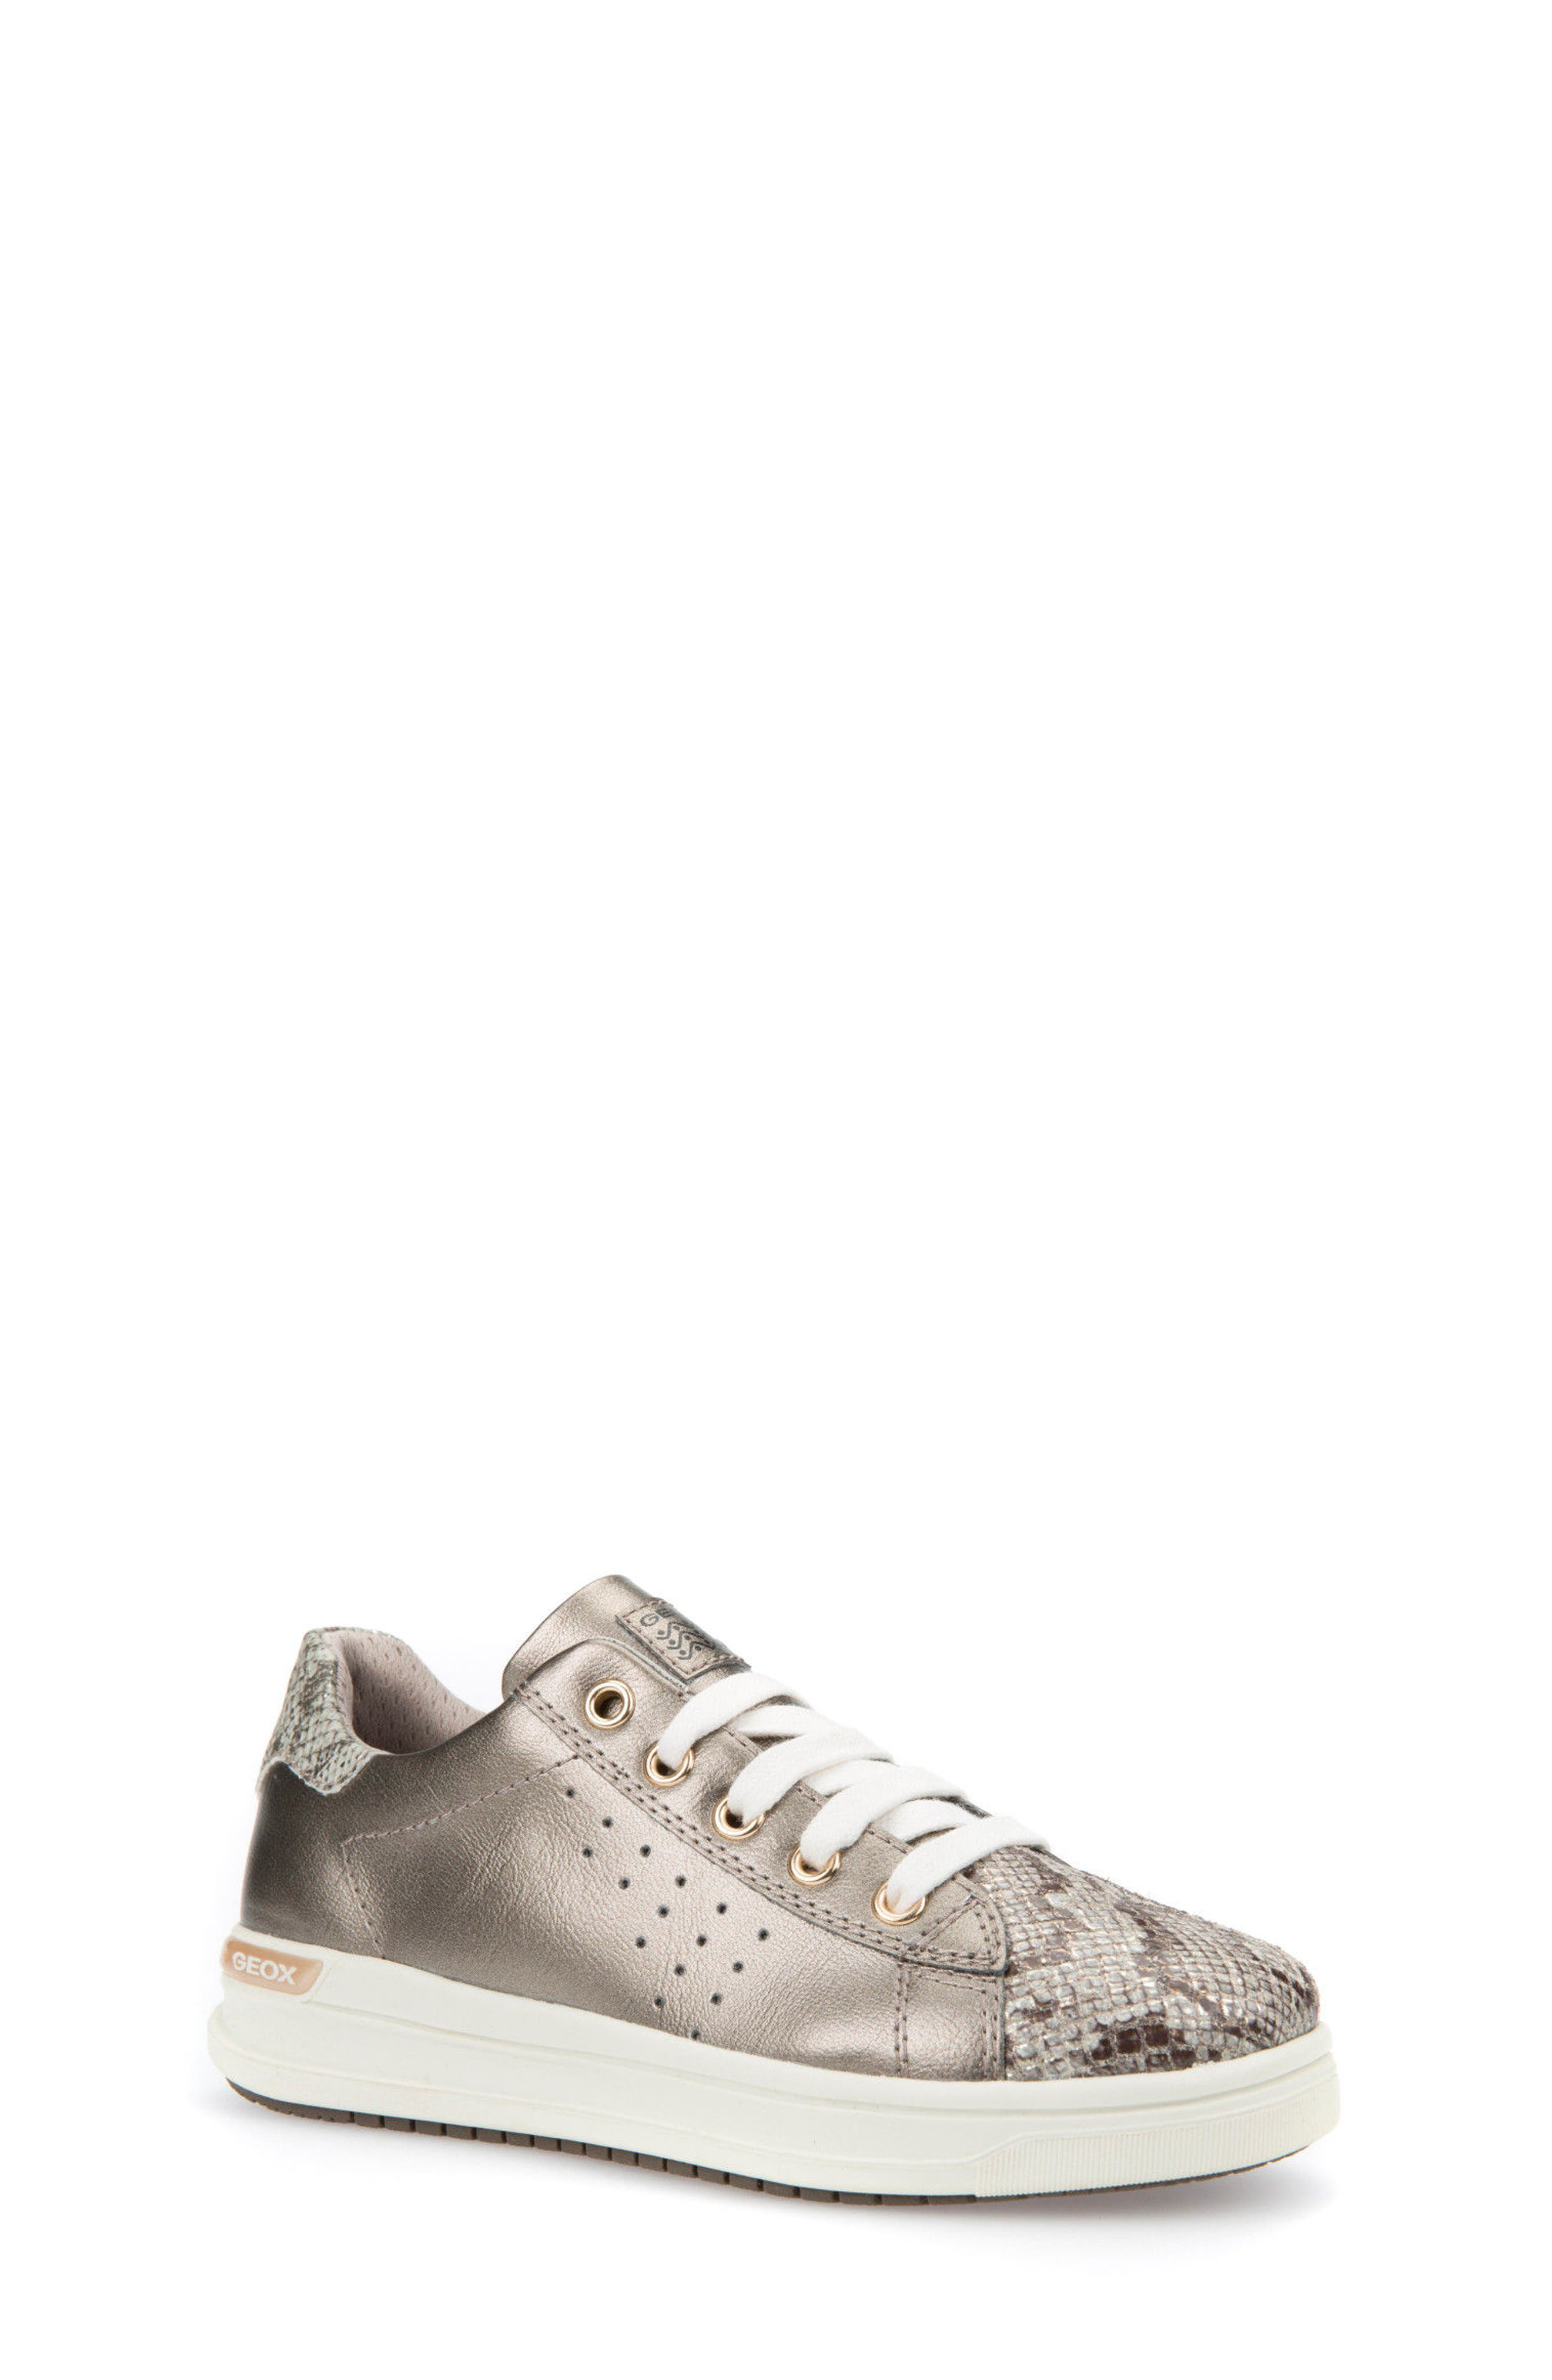 Cave Up Girl Low Top Sneaker,                         Main,                         color, Gold